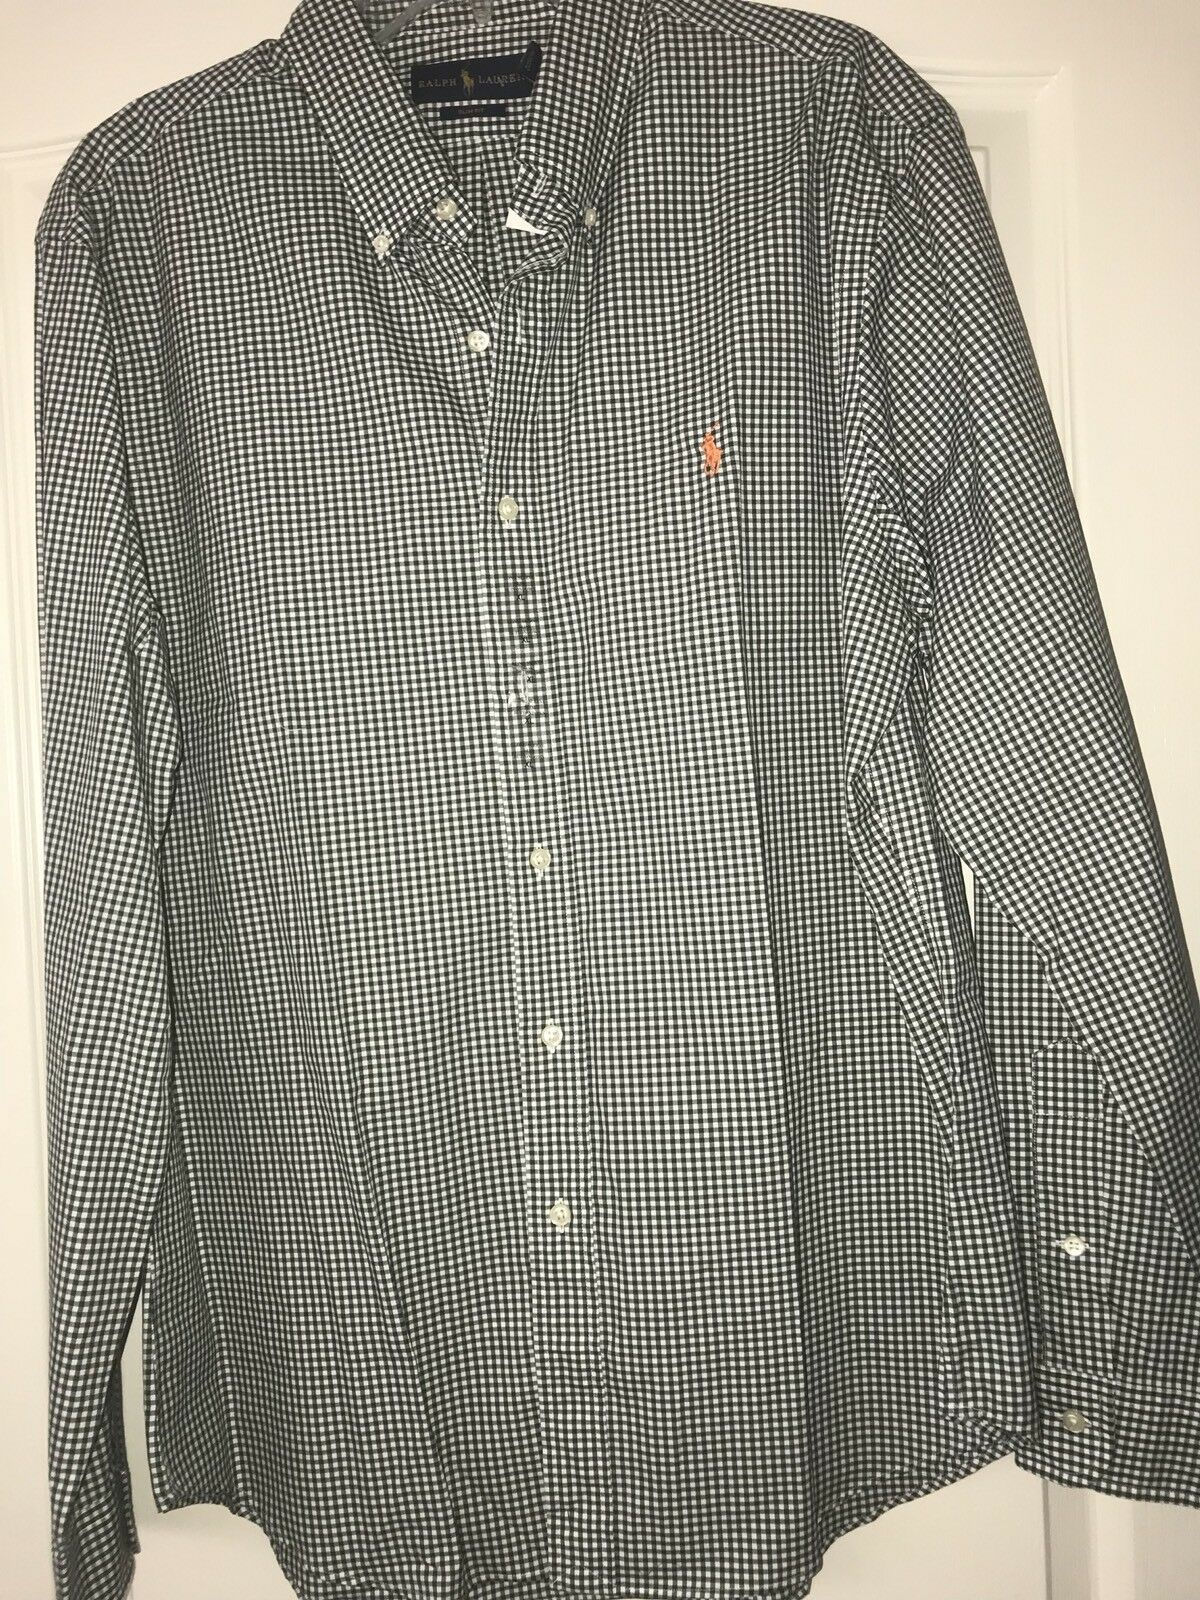 Polo Ralph Lauren Small  Pony  Grün Shirt XLarge XL